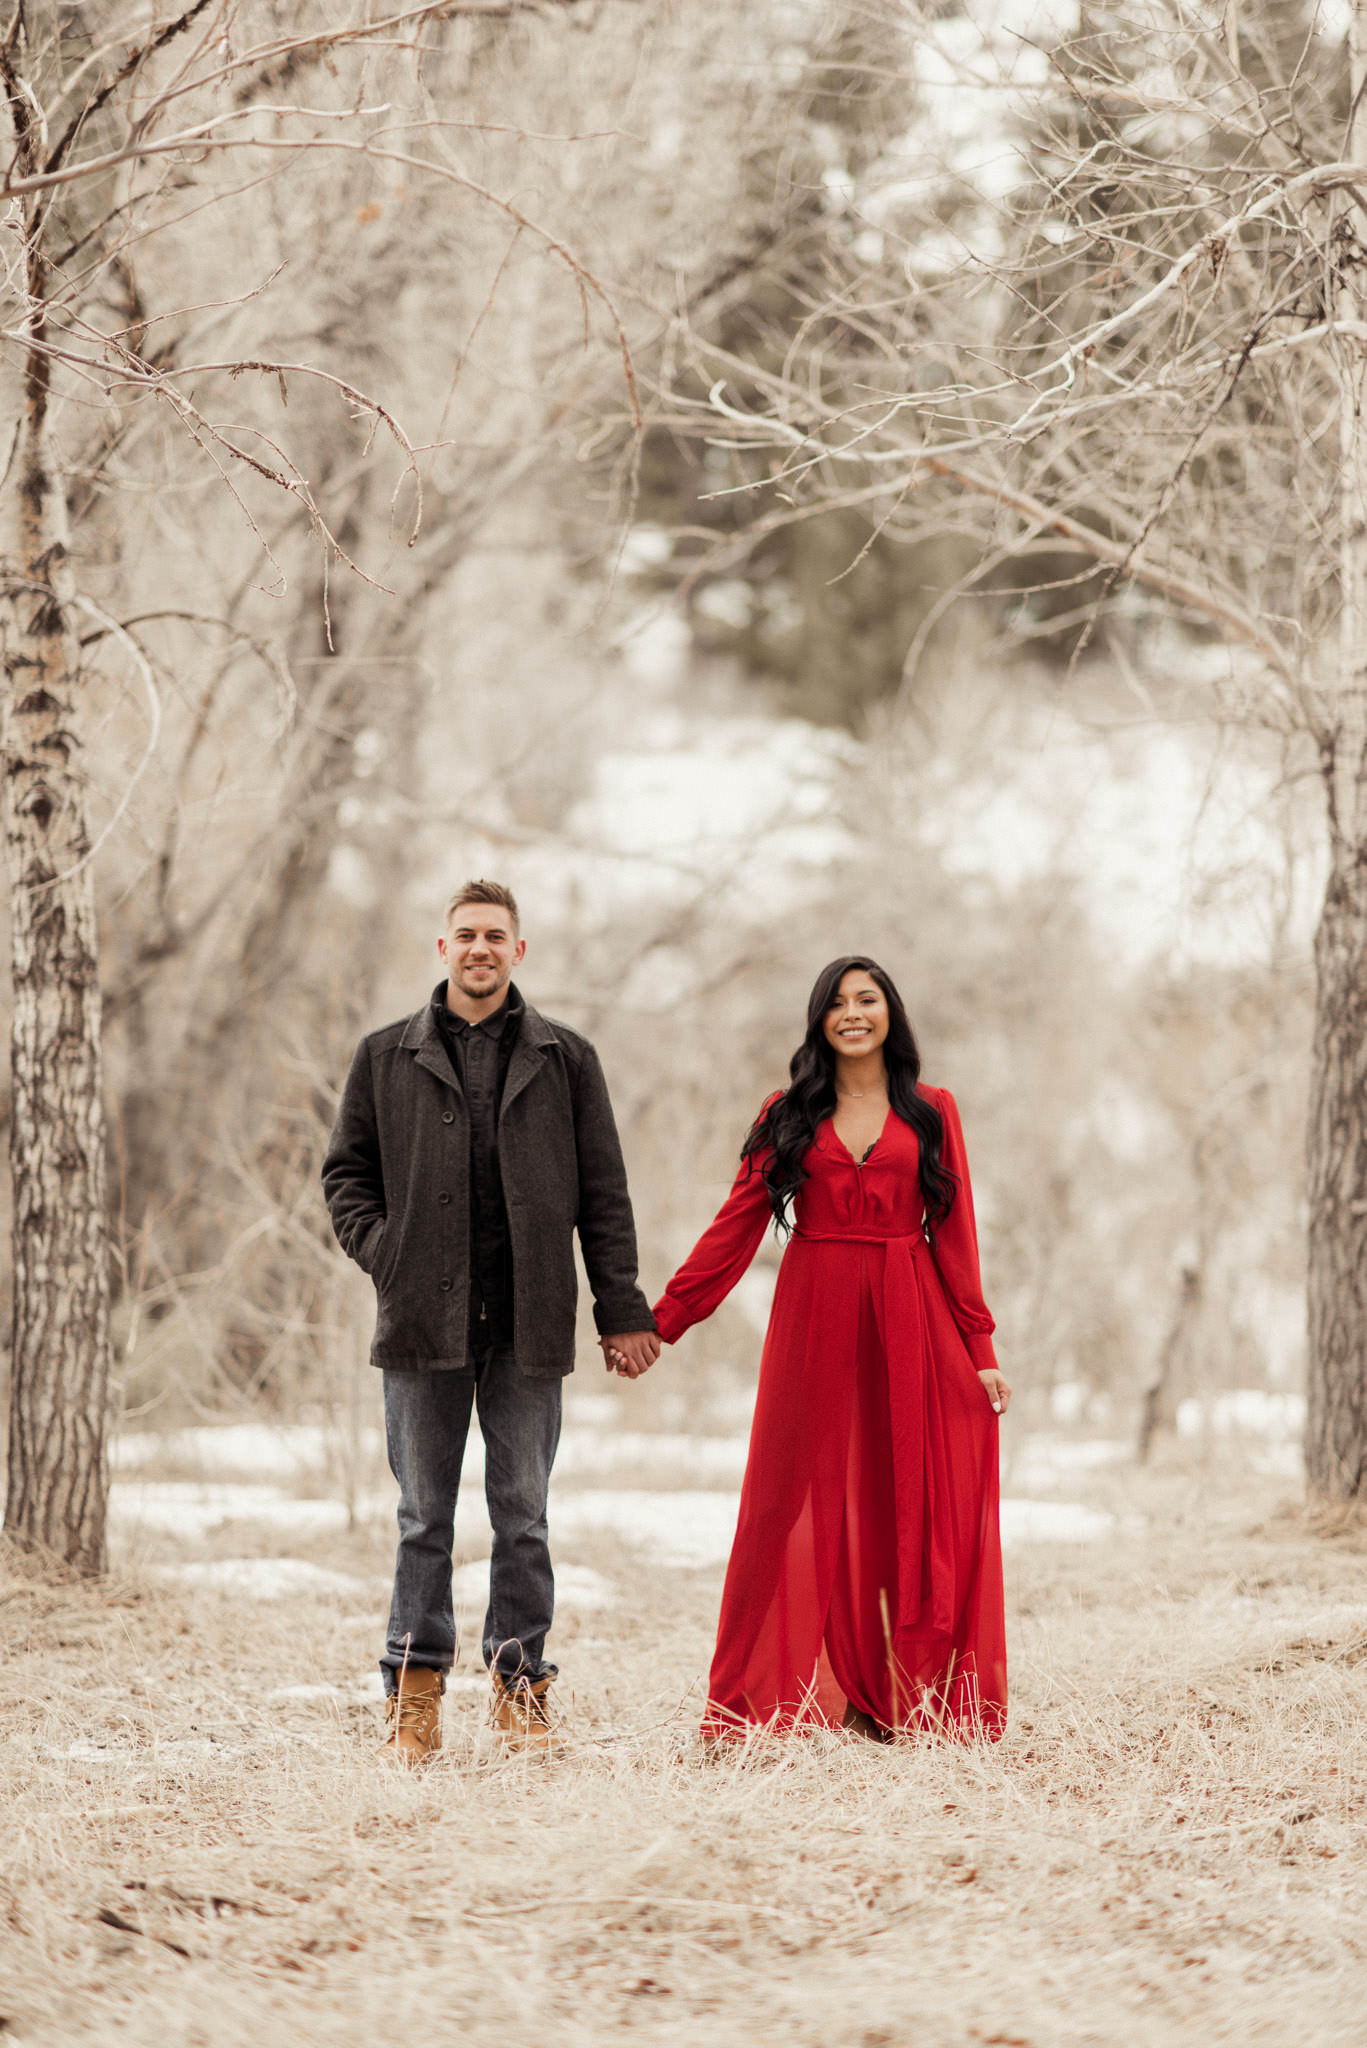 sandra-ryan-colorado-winter-snow-engagement-couples-valentines-red-houston-photographer-sm-32.jpg